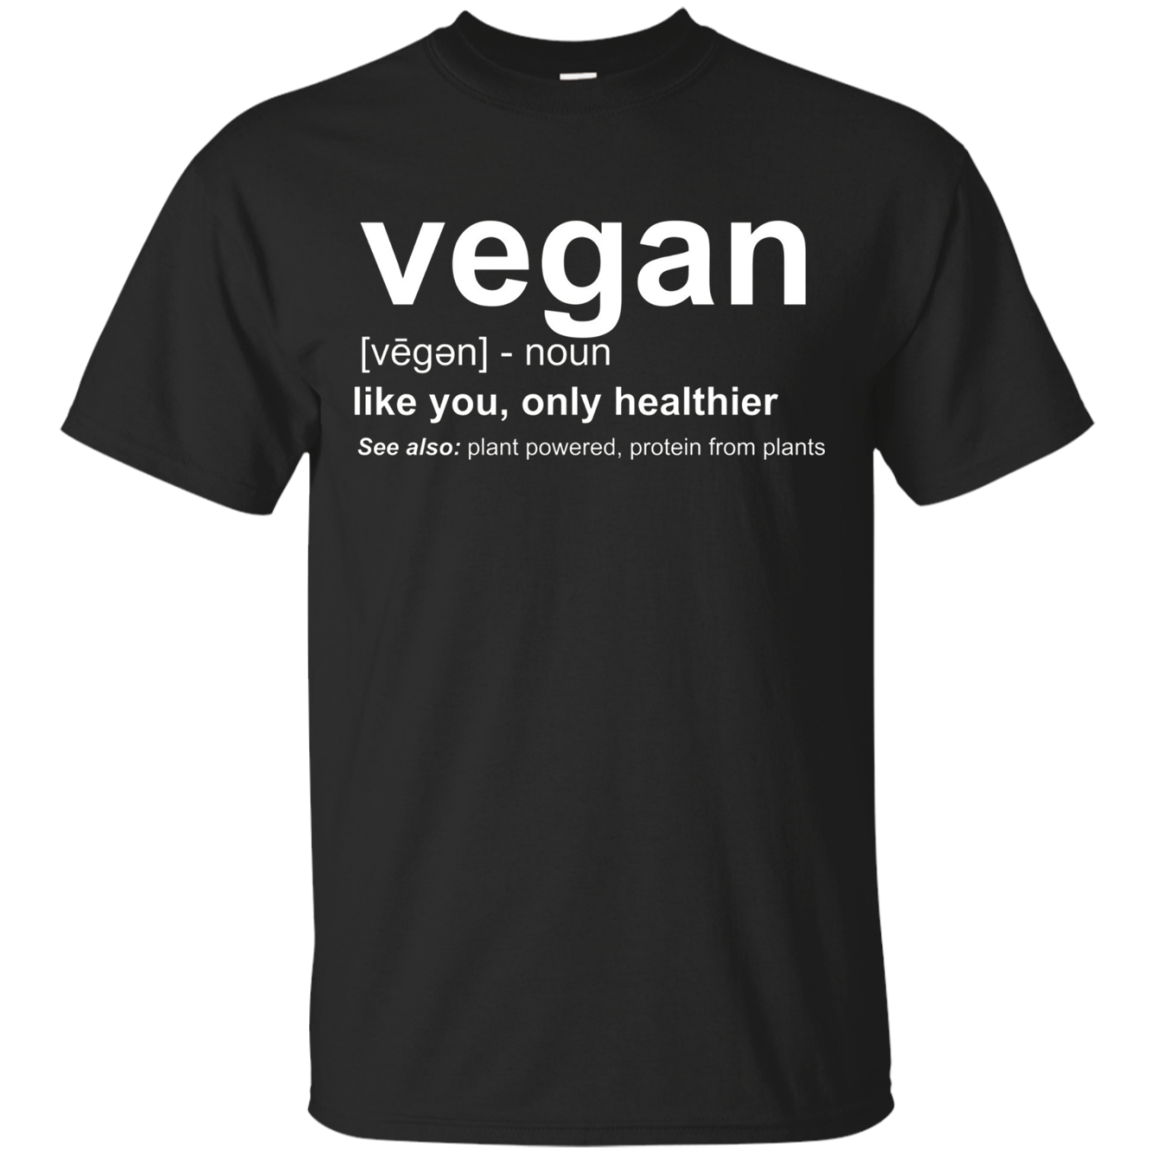 Vegan Shirt - Vegan Definition Shirt